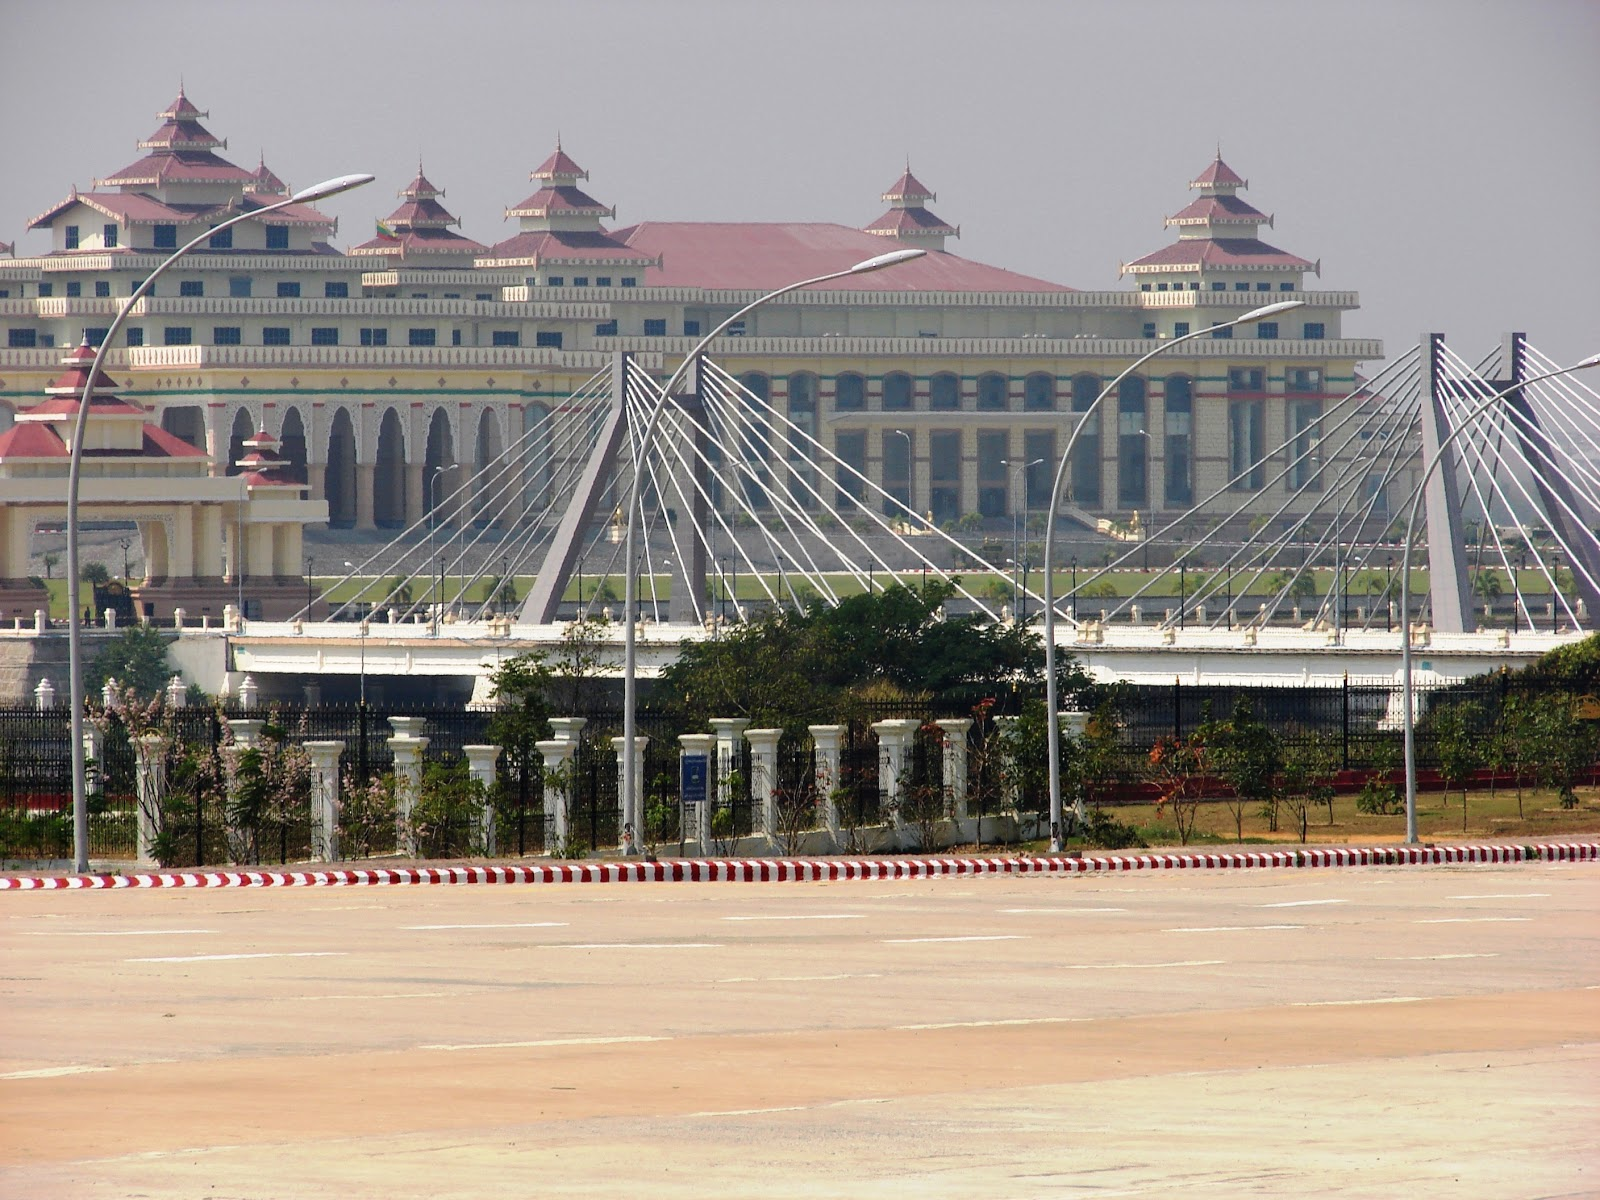 Nay Pyi Taw Myanmar  City pictures : ... Scott's Travel Columns: Visiting Myanmar's capital Nay Pyi Taw